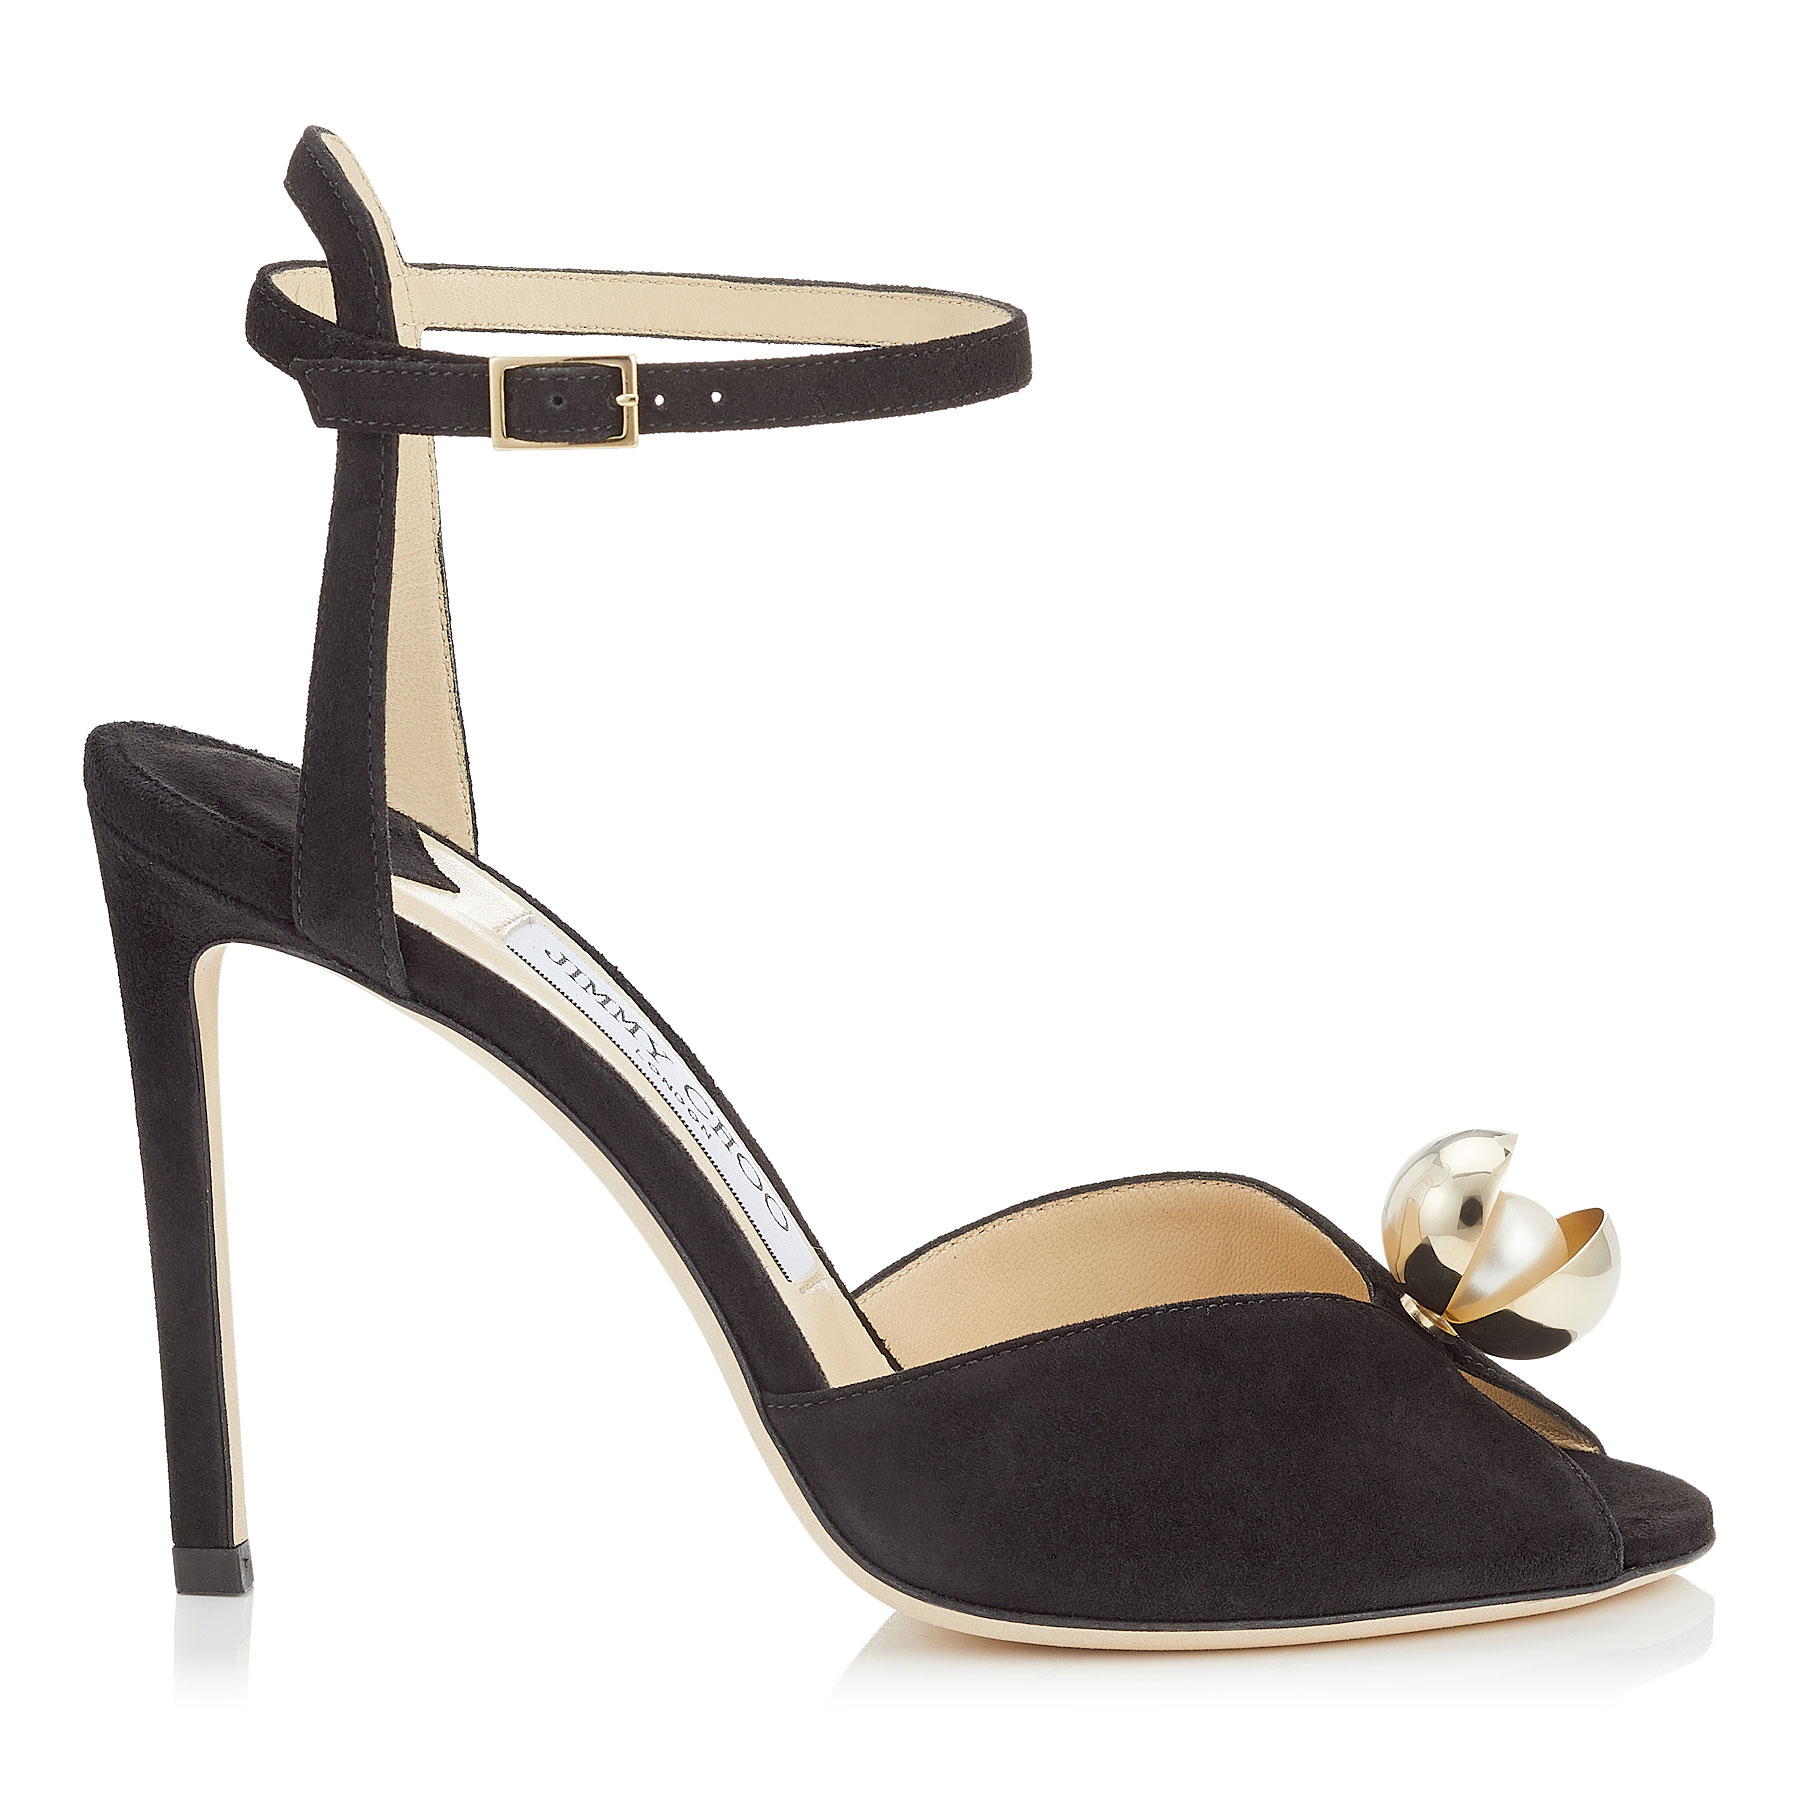 SACORA 100 Black Suede Sandals with Oyster Bead Pearl by Jimmy Choo